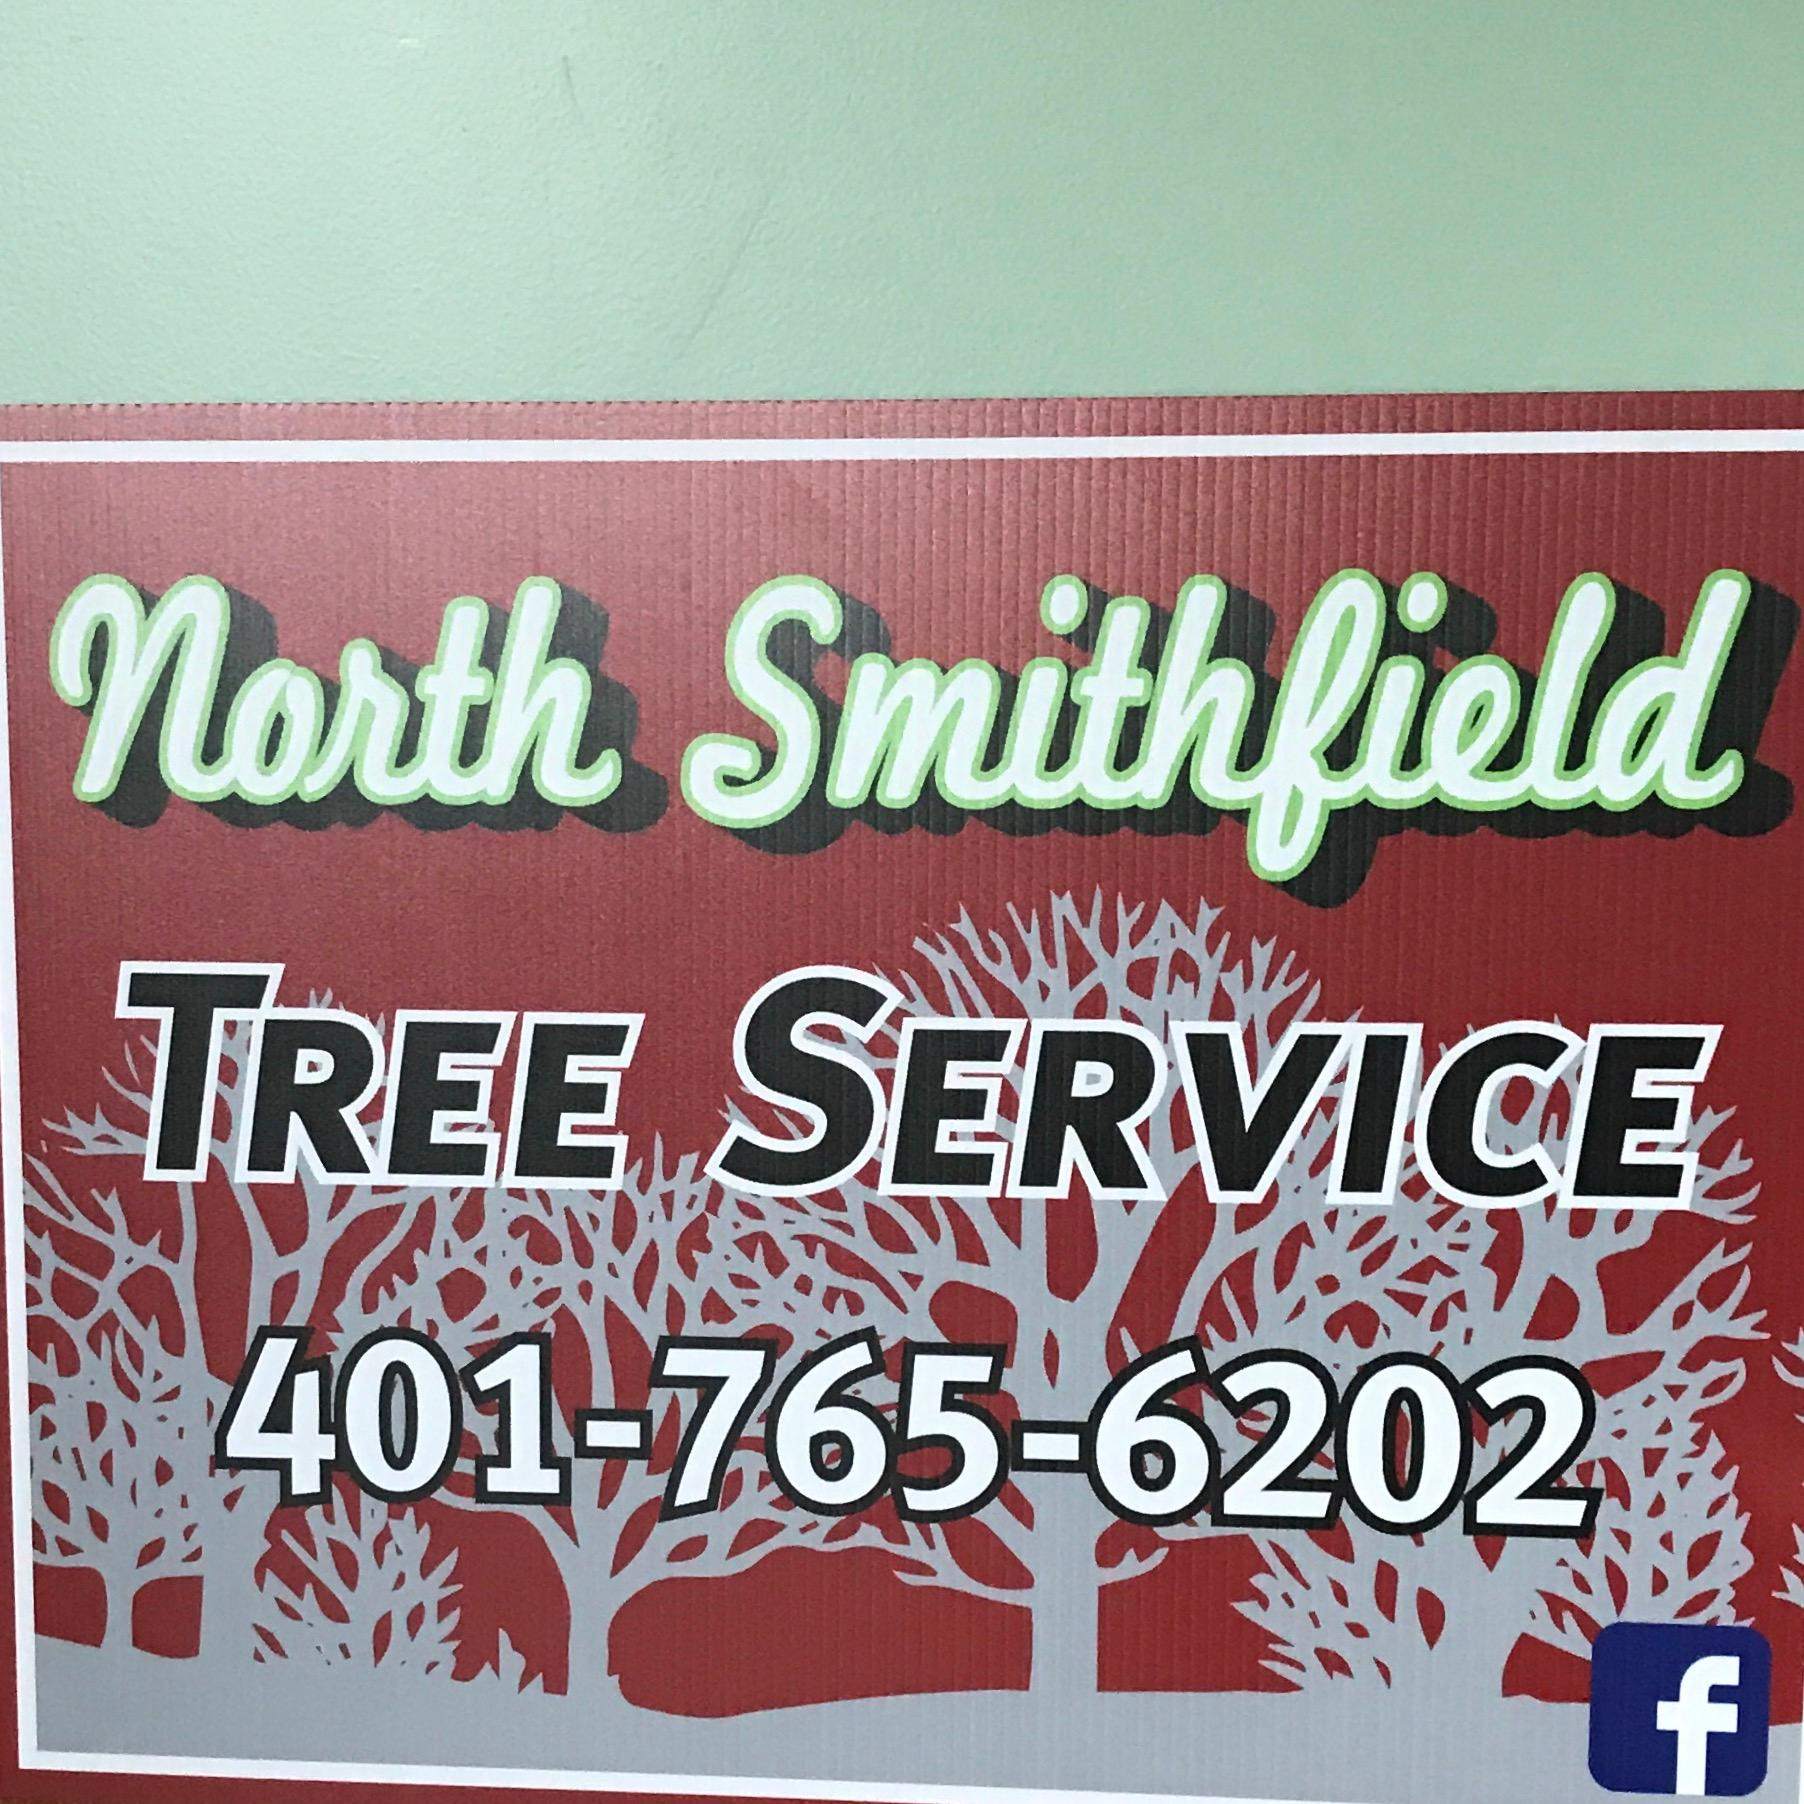 North Smithfield Tree Service